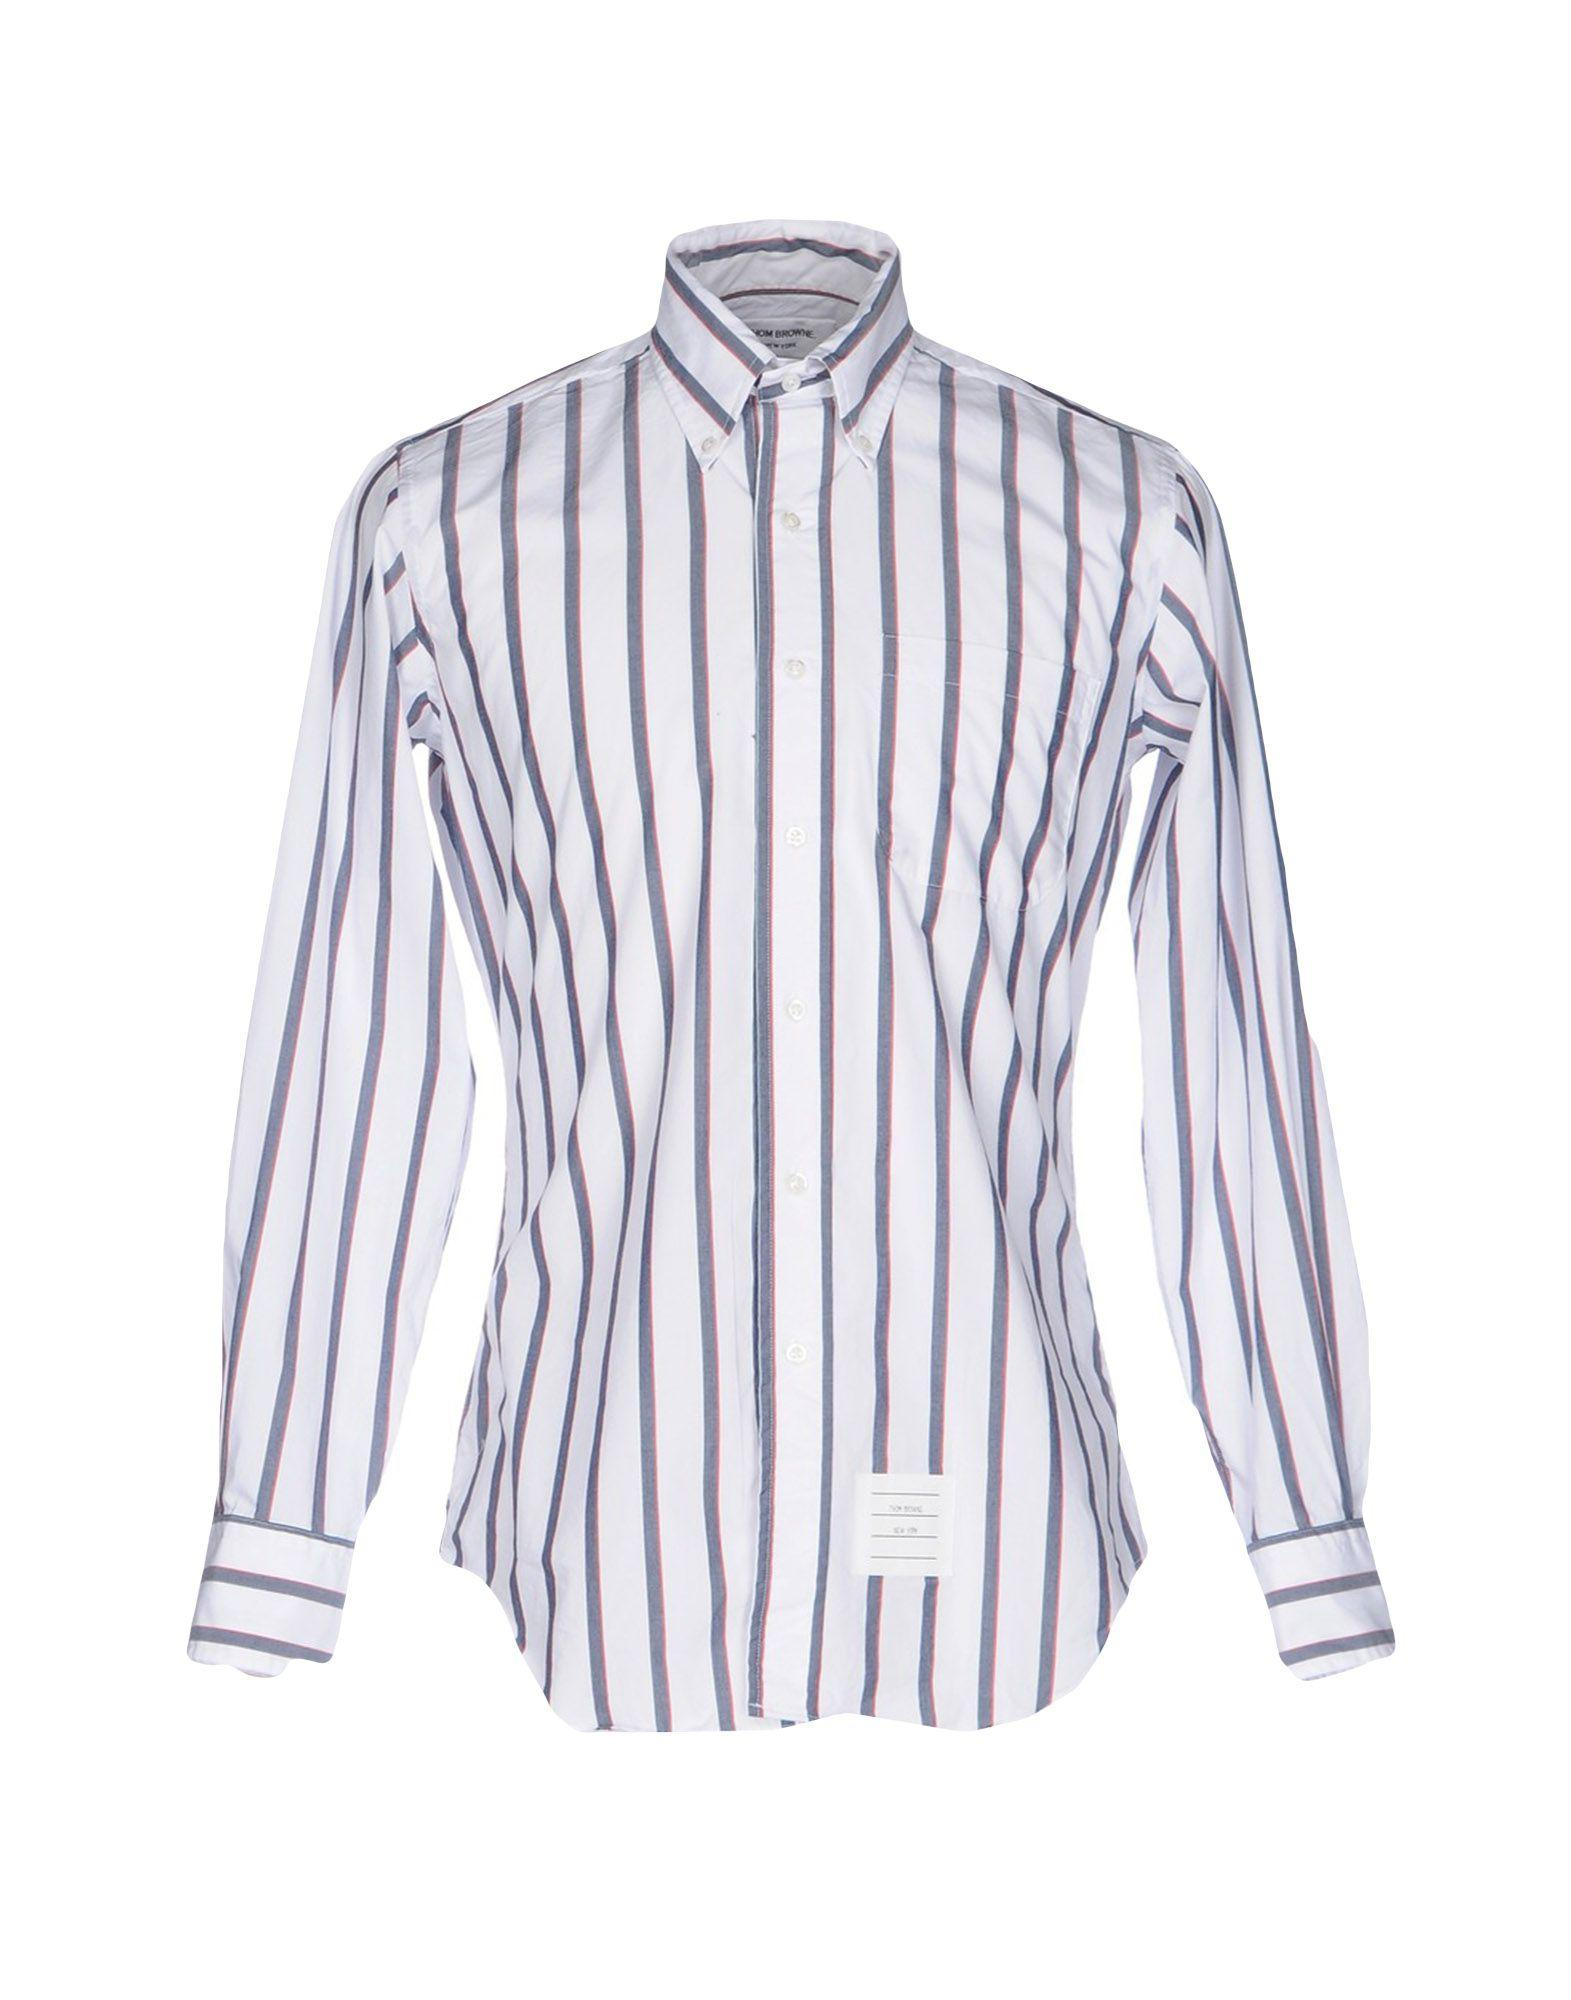 Lyst thom browne shirt in white for men for Thom browne white shirt